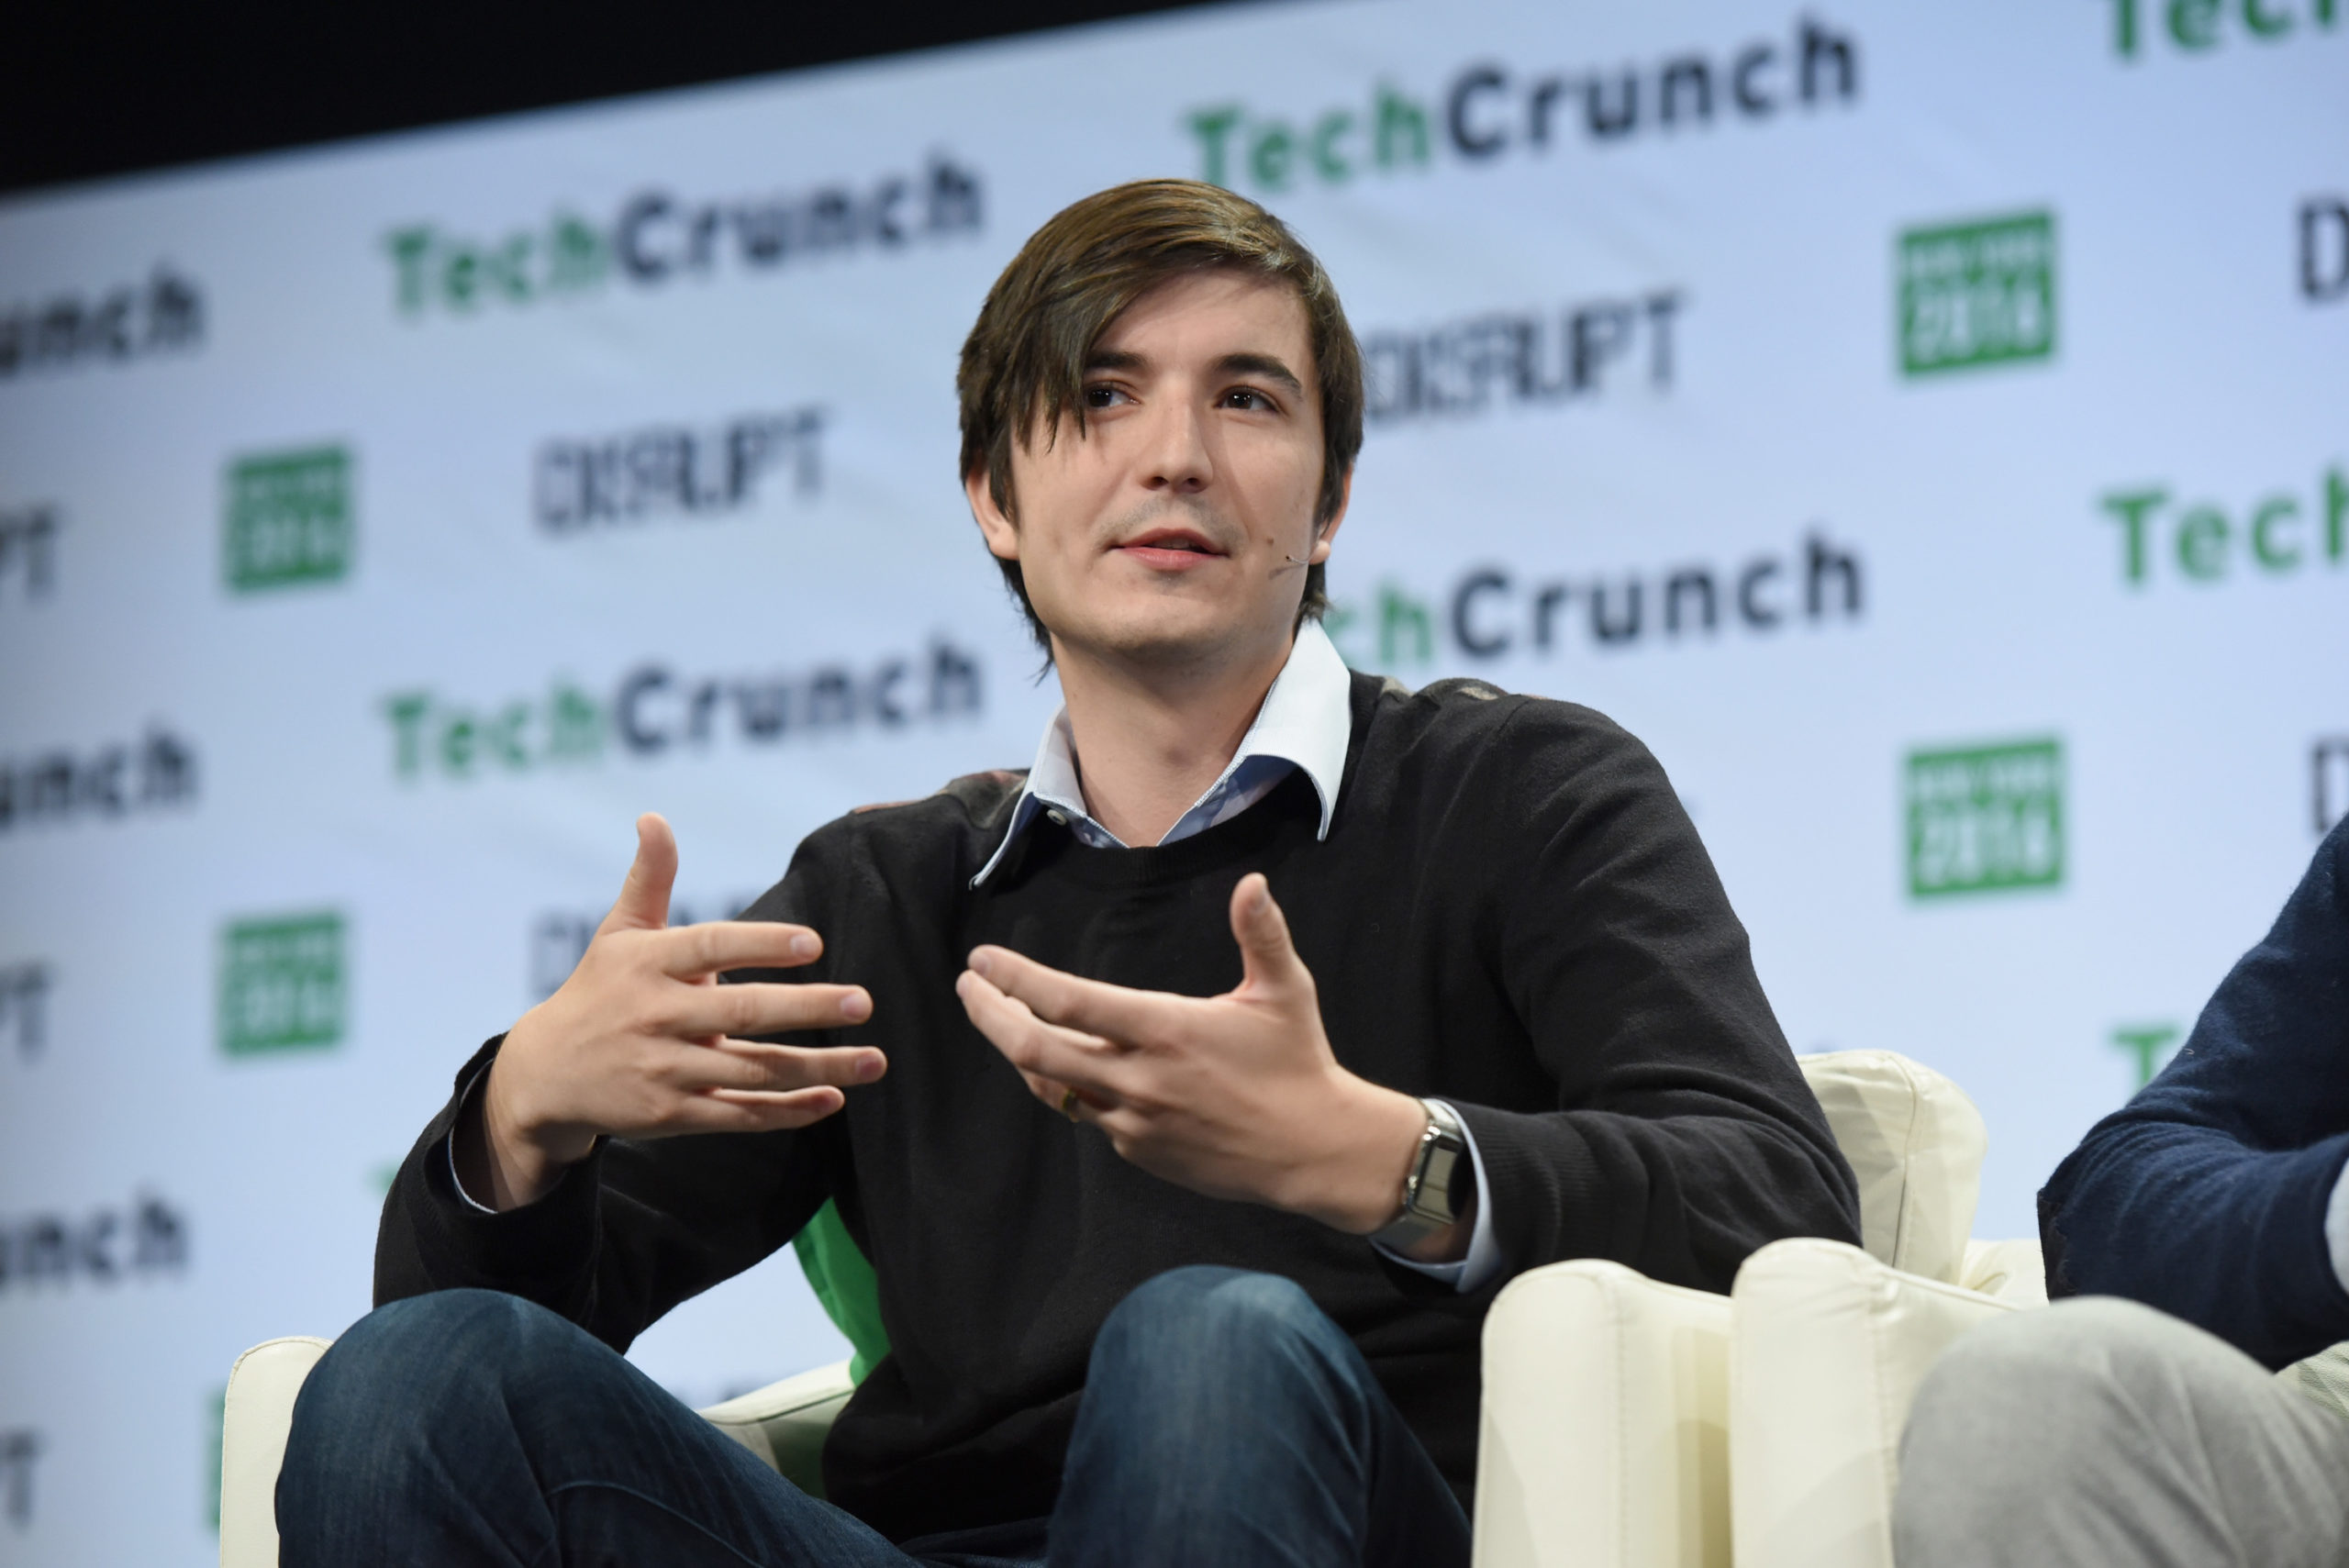 NEW YORK, NY - MAY 10: Co-founder and co-CEO of Robinhood Vladimir Tenev speaks onstage during TechCrunch Disrupt NY 2016 at Brooklyn Cruise Terminal on May 10, 2016 in New York City. (Photo by Noam Galai/Getty Images for TechCrunch)